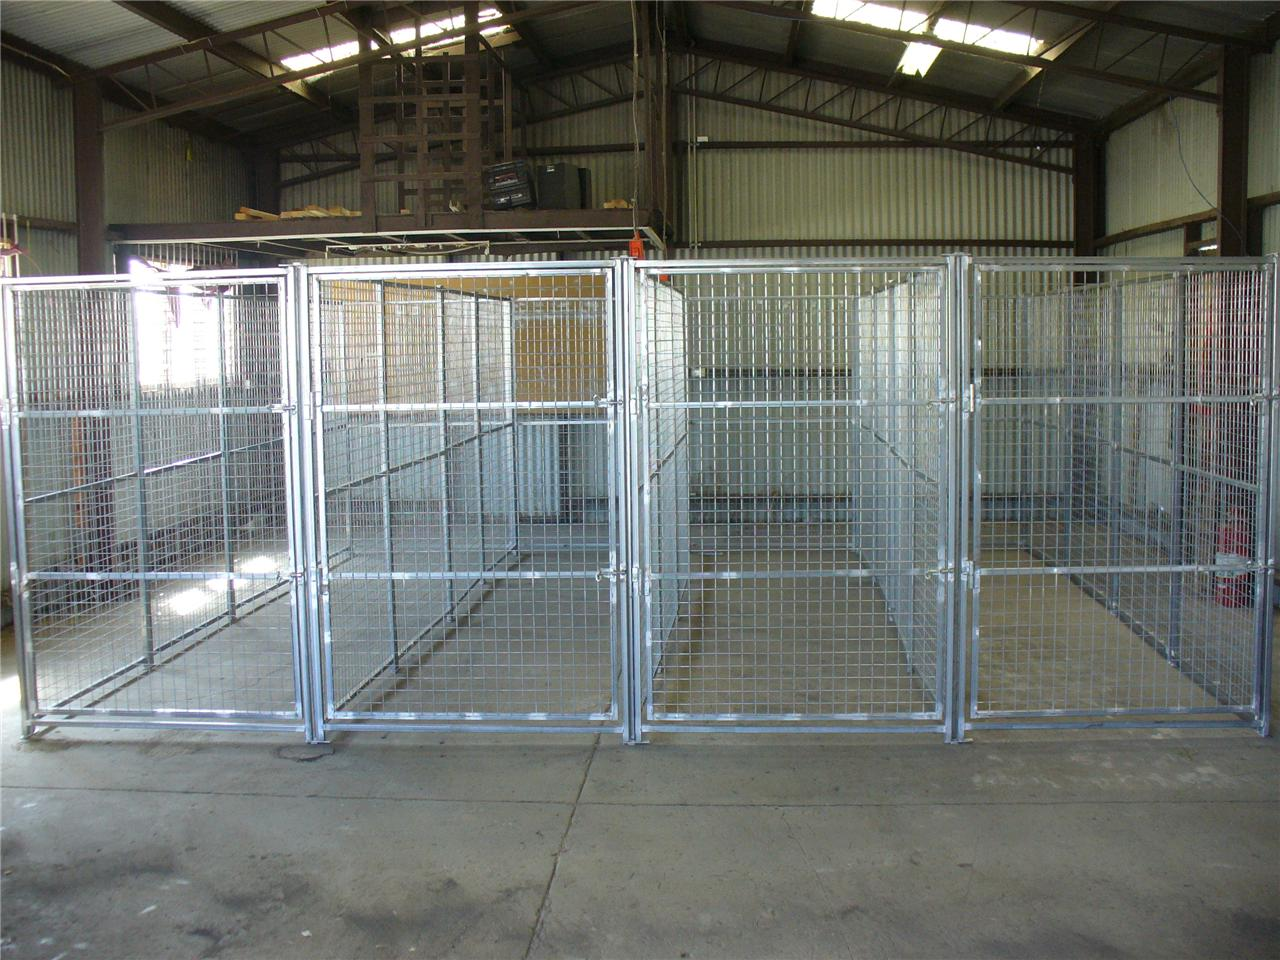 50l x 50w x 185h 4 runs portable dog run pen enclosure for Dog run cage enclosure